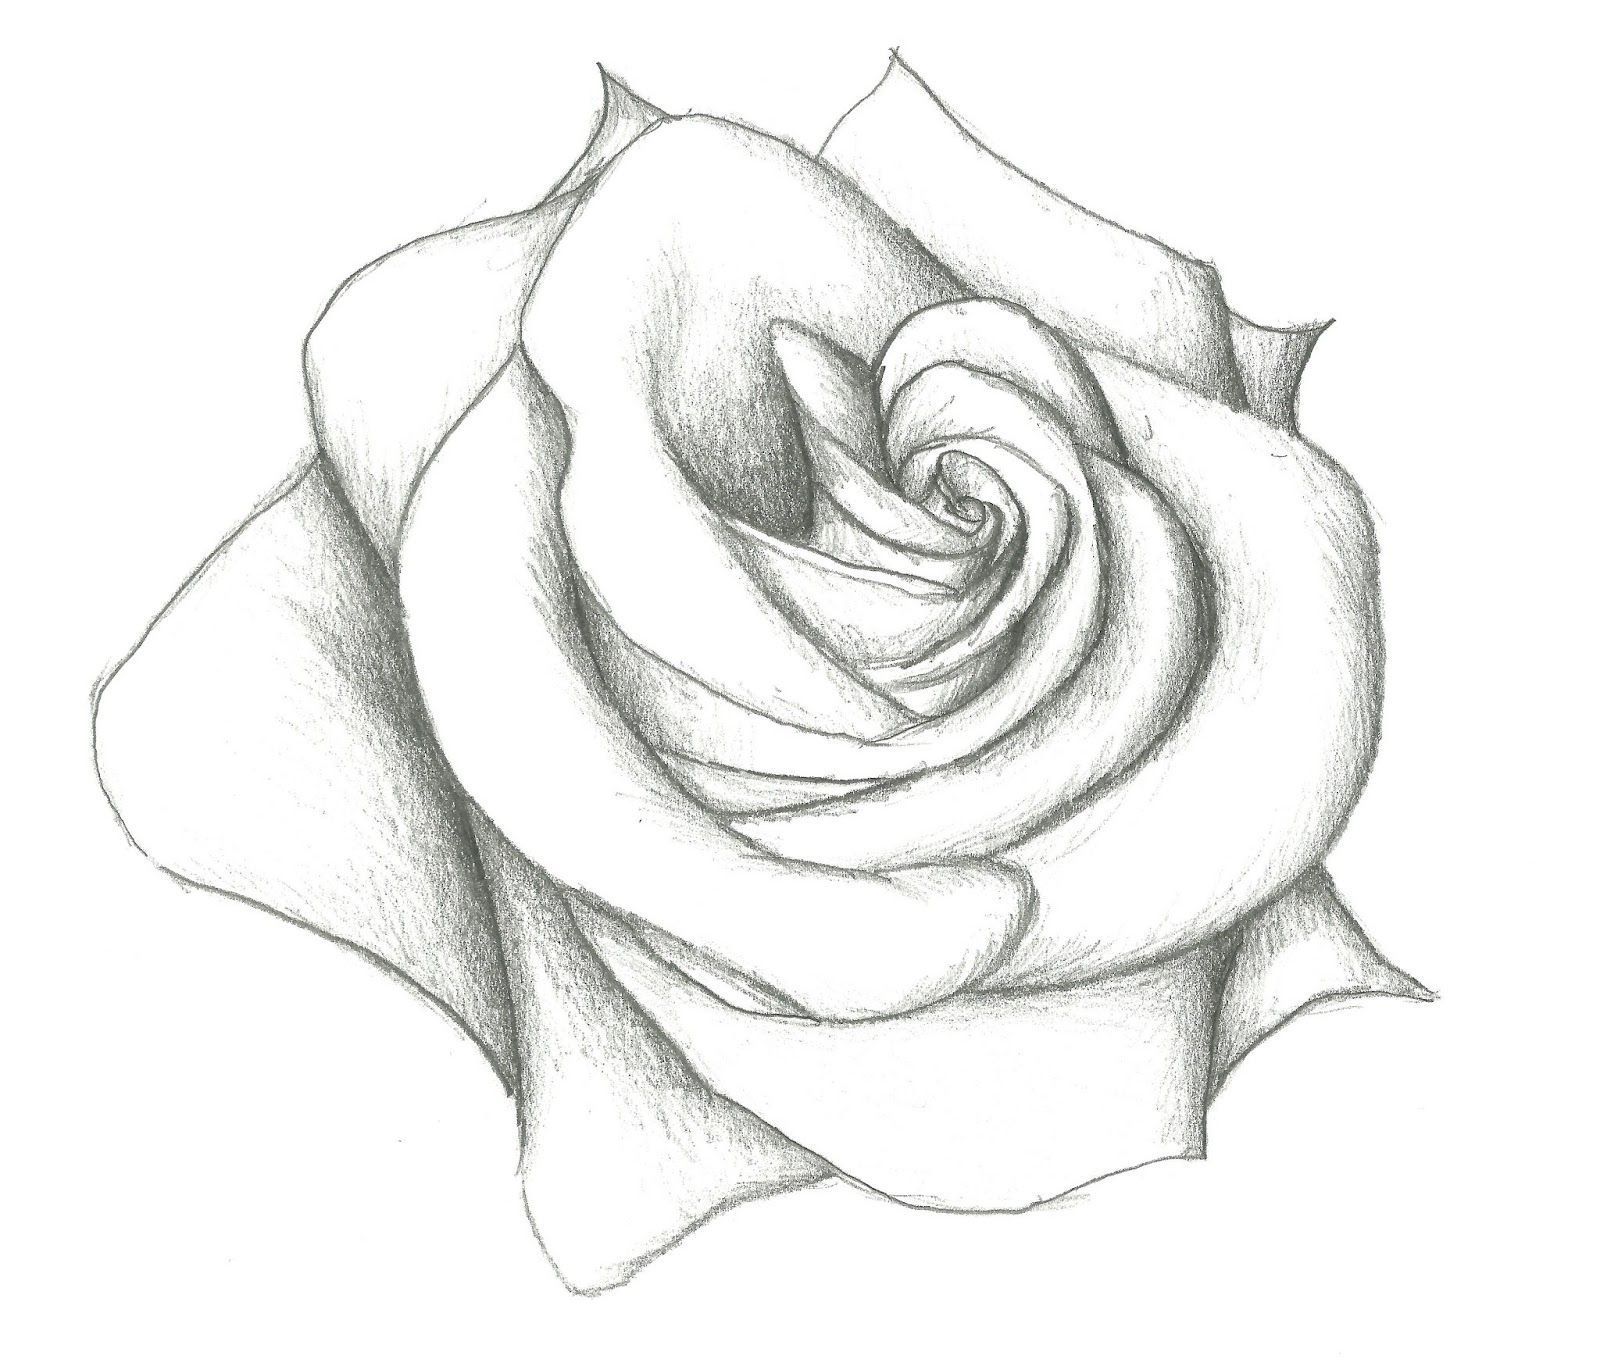 Rose Flower Drawings In Pencil Step By Step Easy Pencil